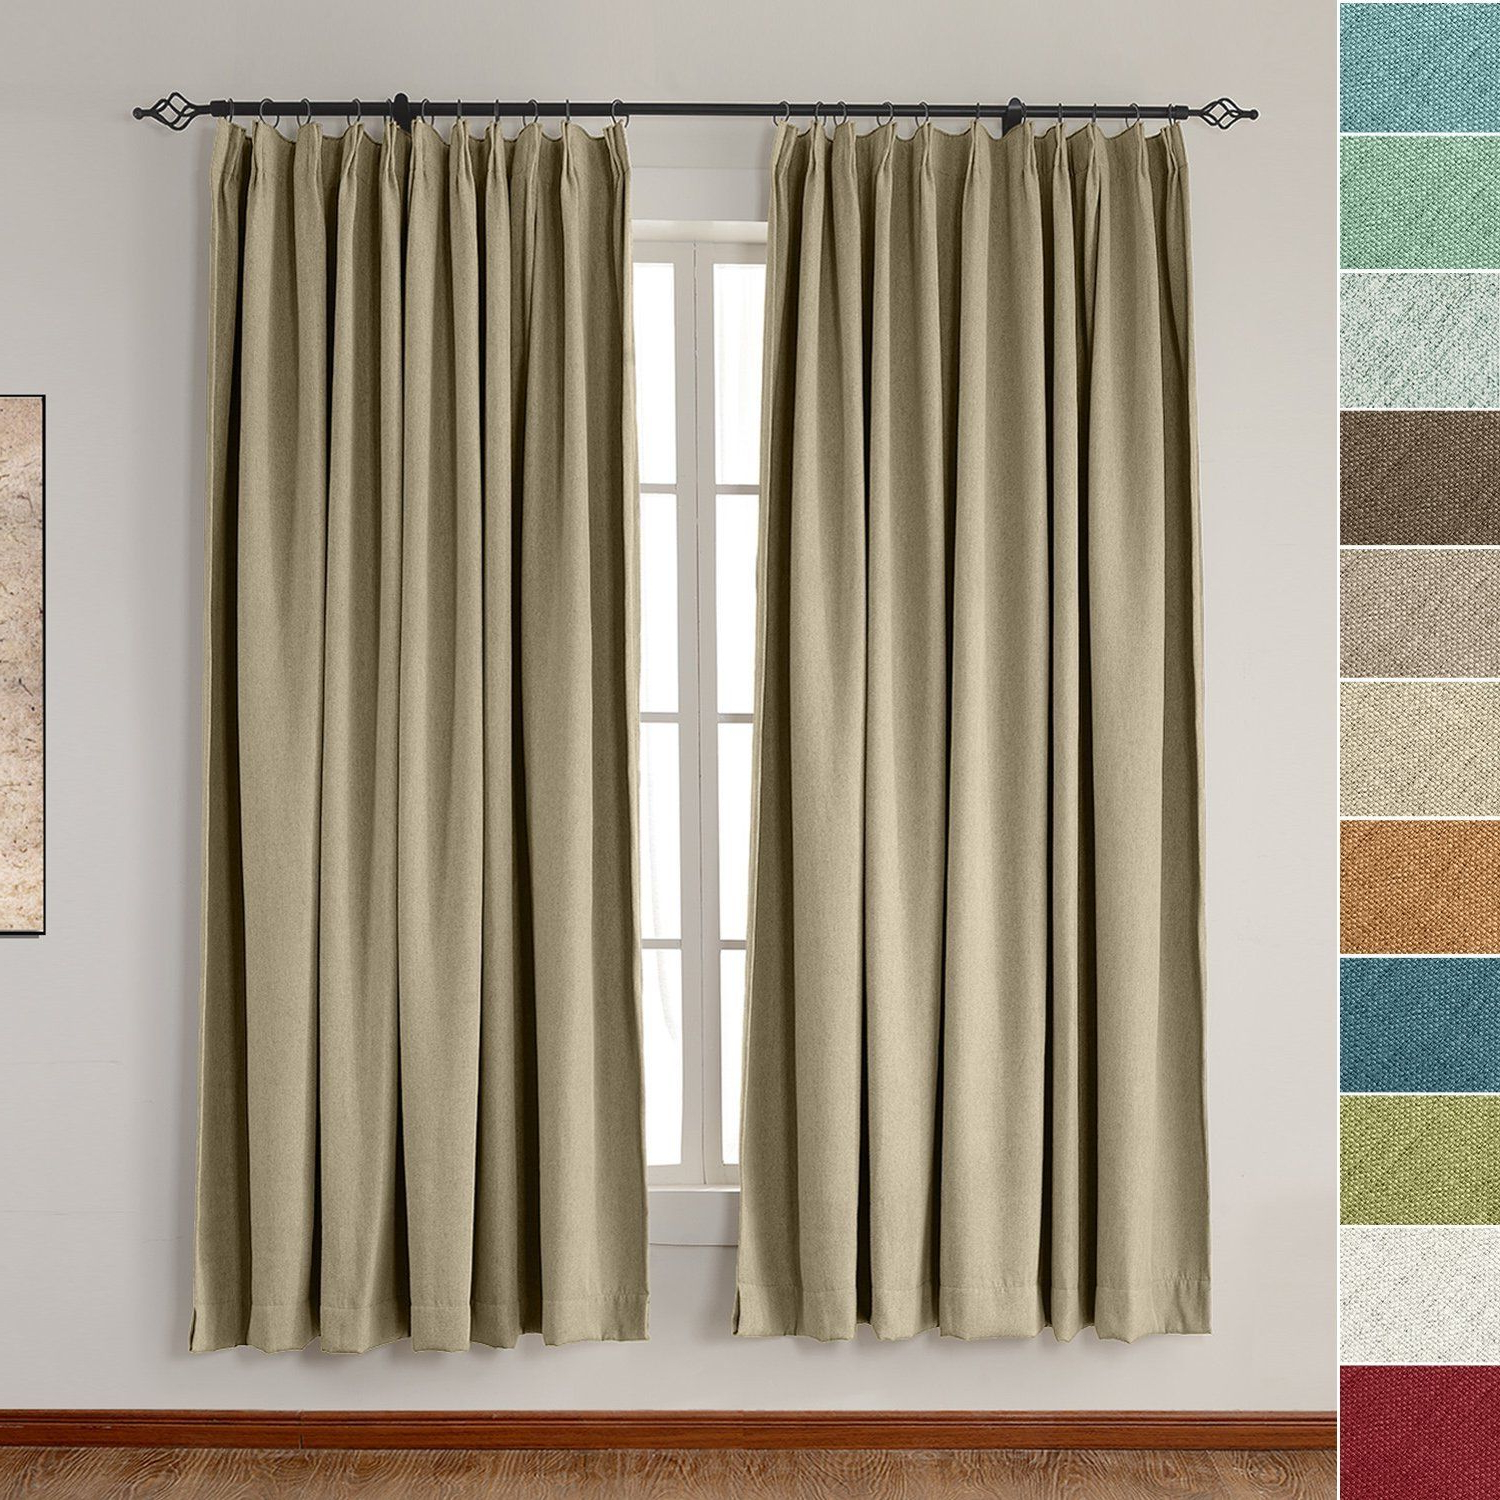 Newest Faux Linen Extra Wide Blackout Curtains Throughout Amazon: Extra Wide Heavyweight Luxury Faux Linen Curtain (View 12 of 21)